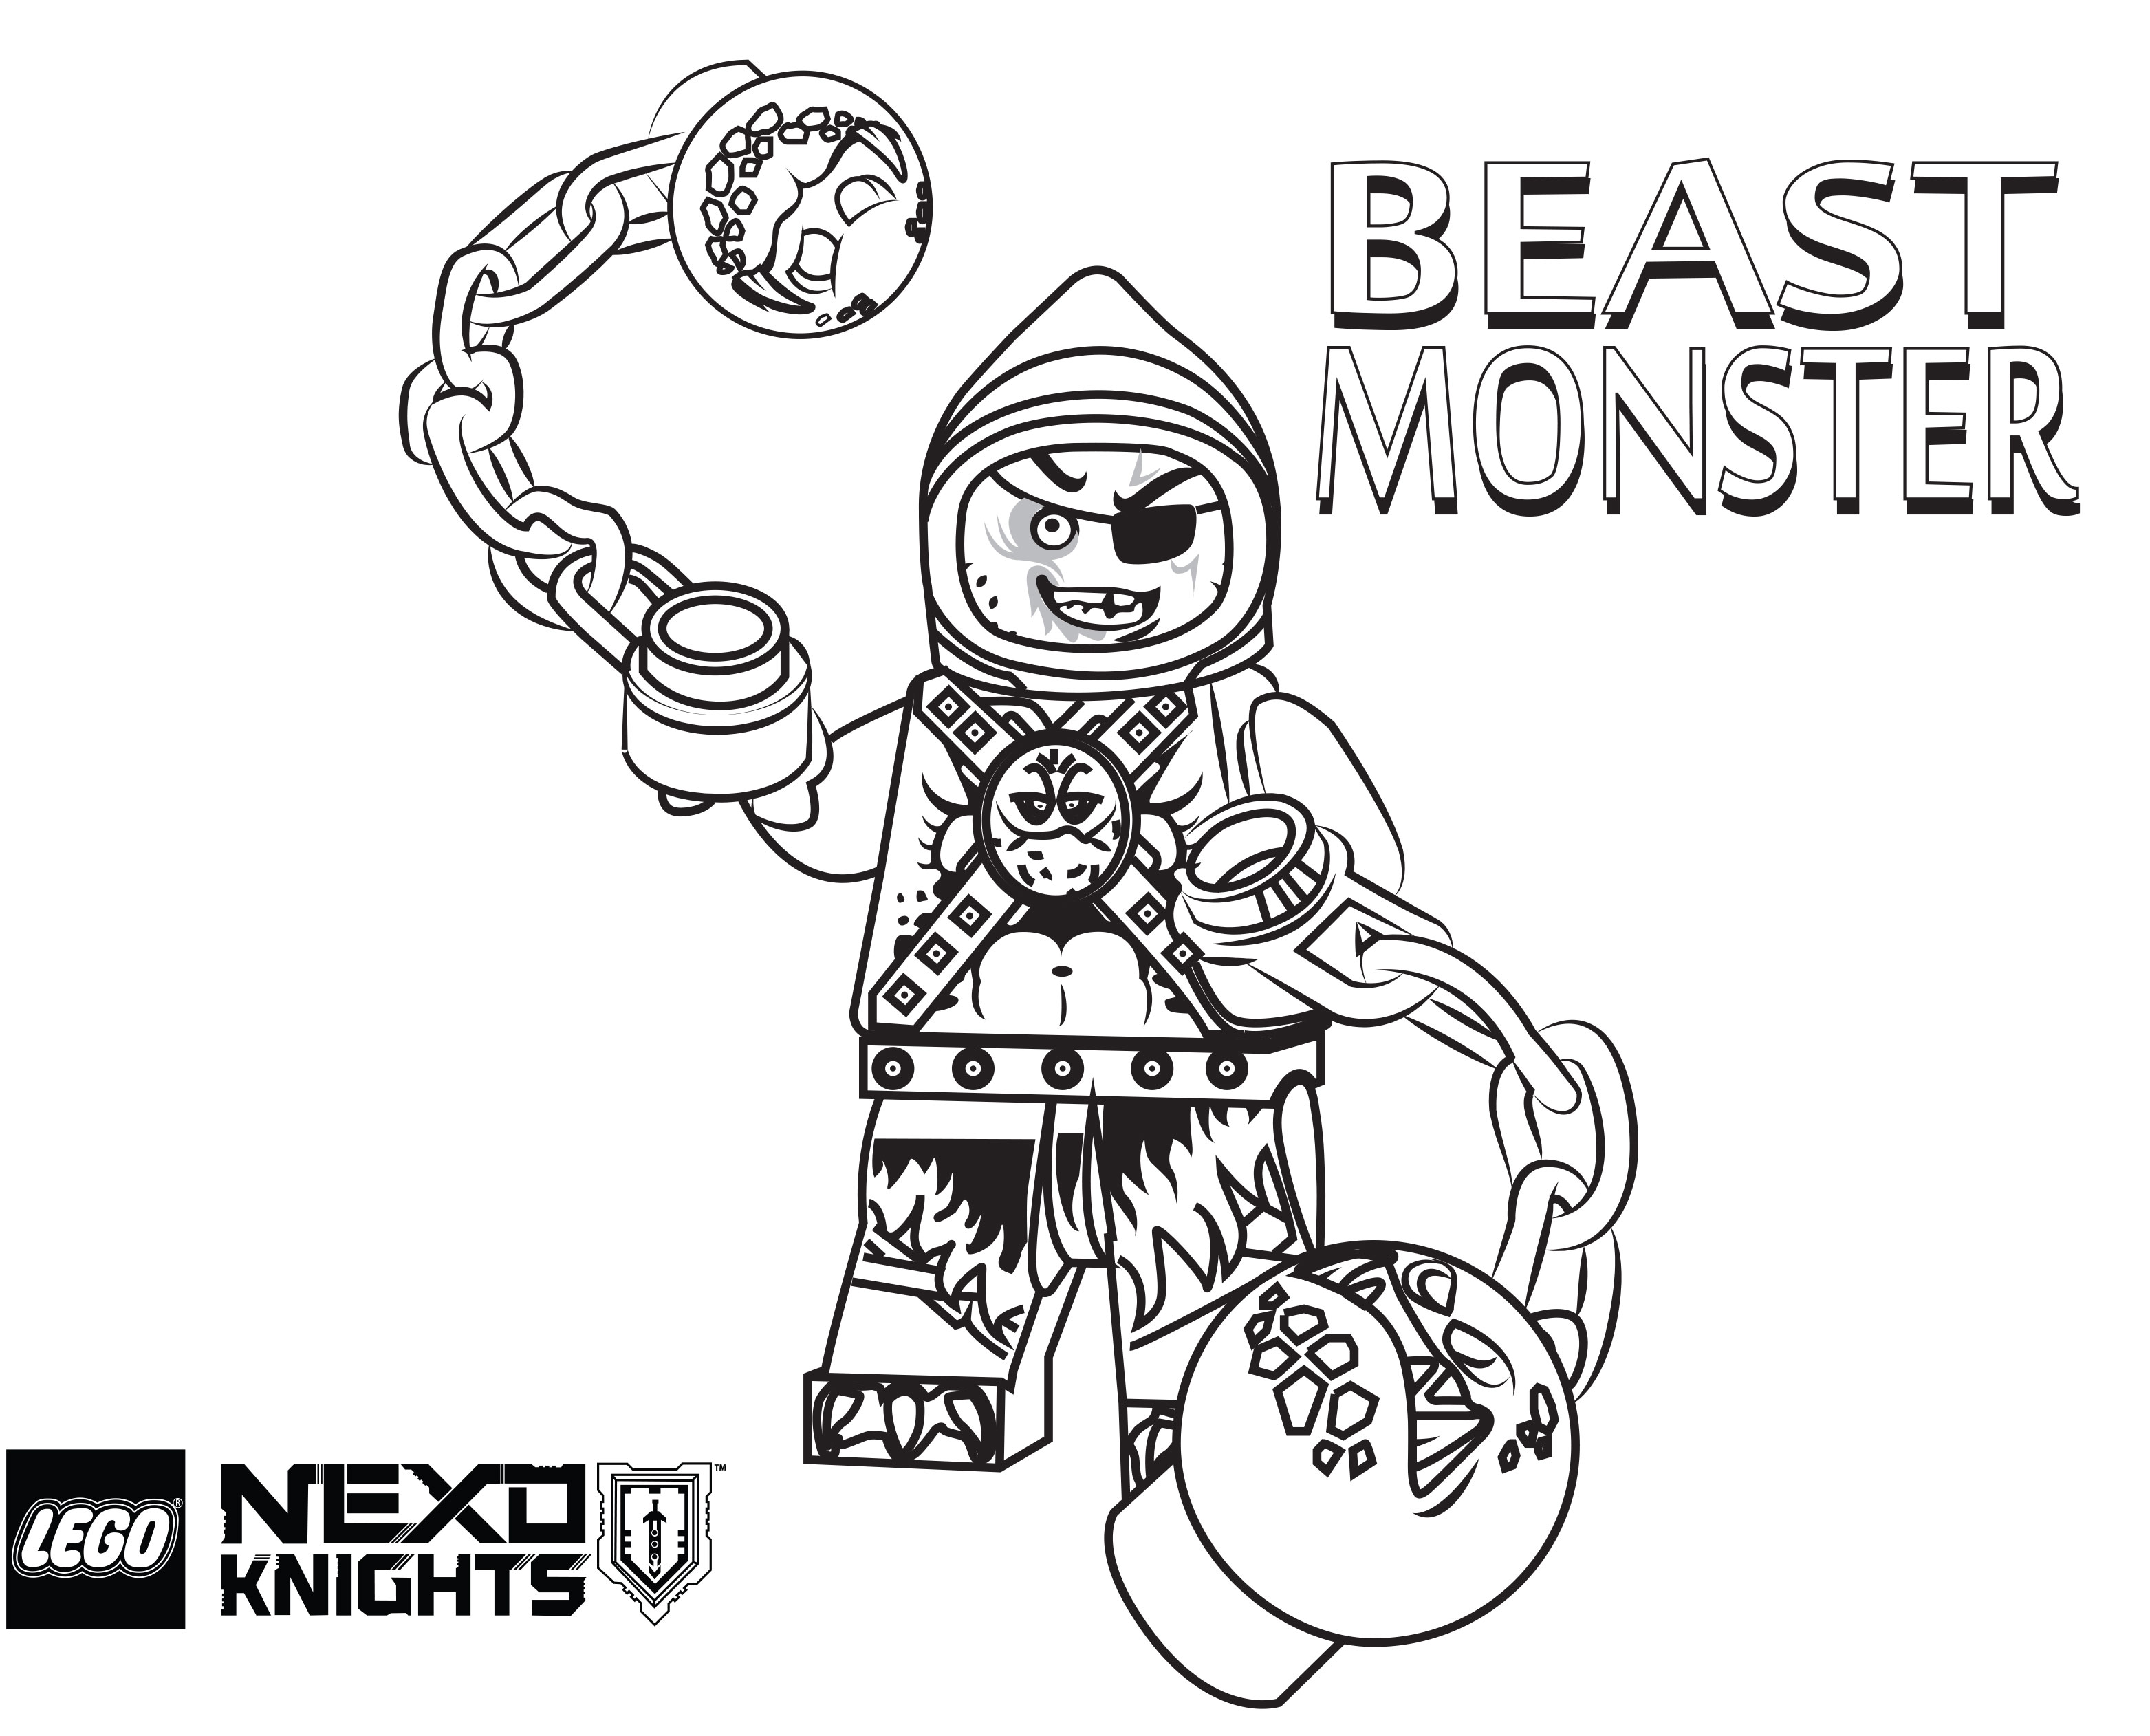 lego knight coloring pages - photo#10